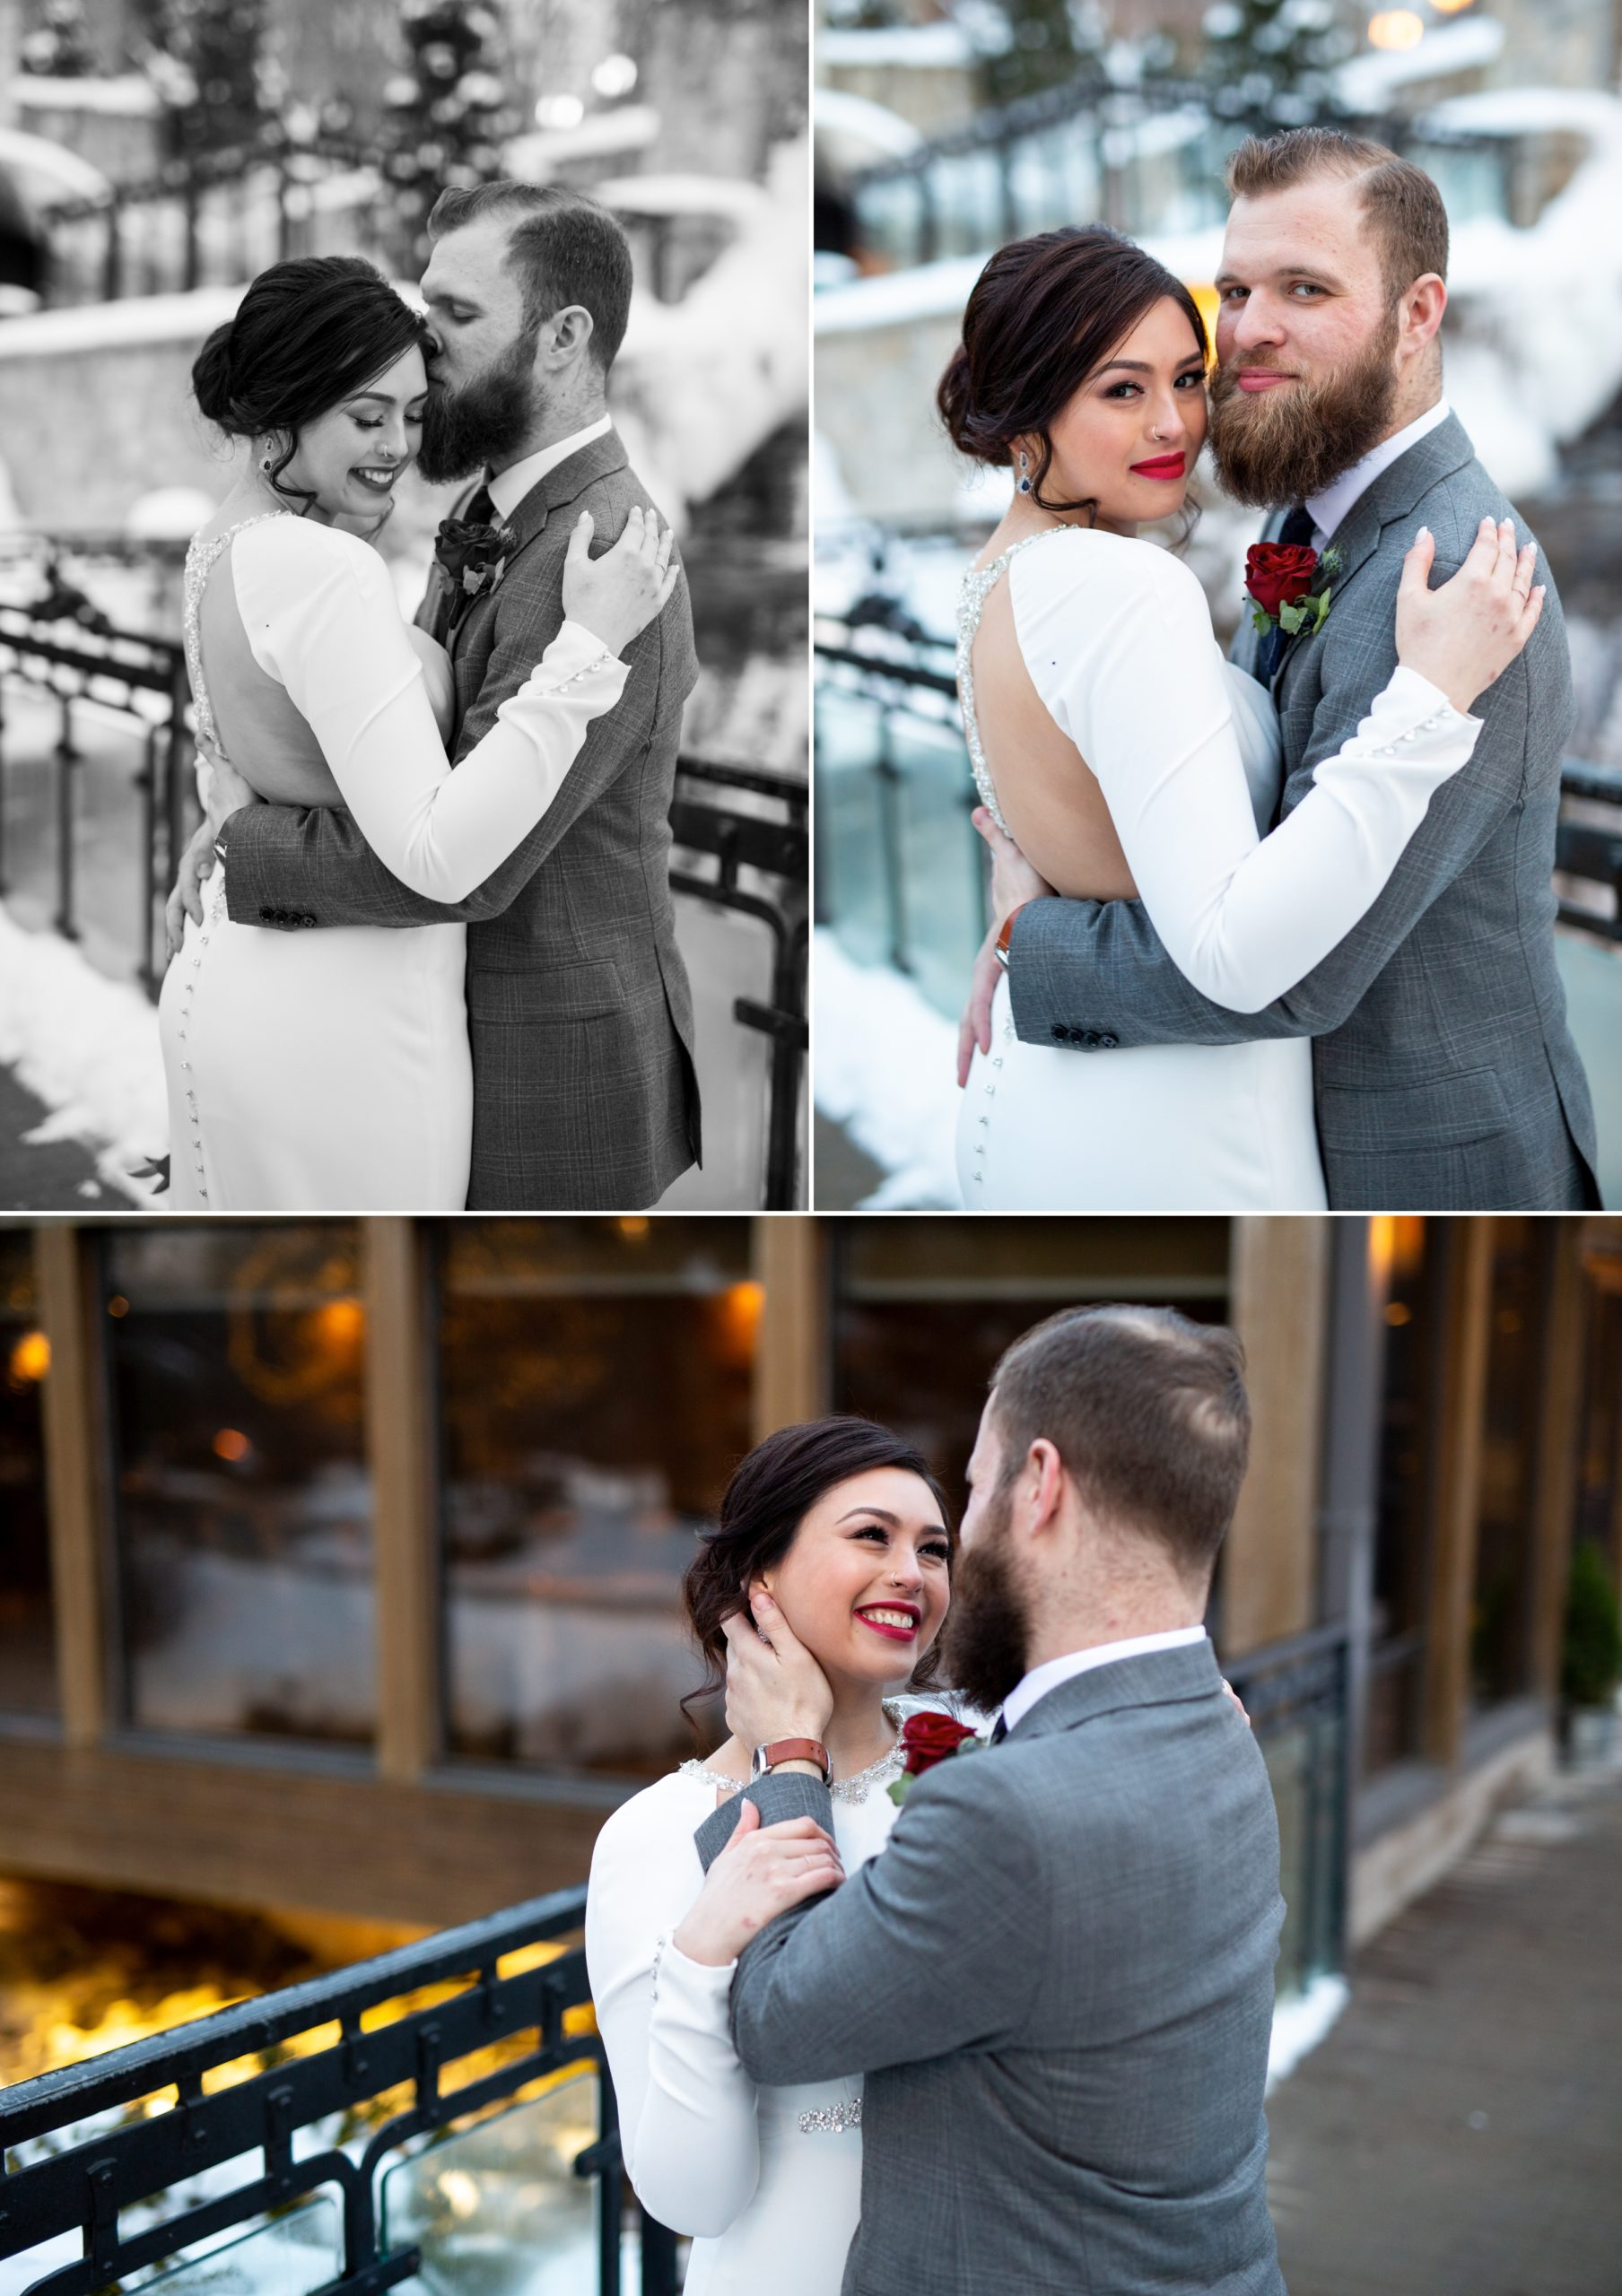 Portraits Bride Ancaster Mill Winter Wedding, Ancaster, Hamilton, Zsuzsi Pal Photography